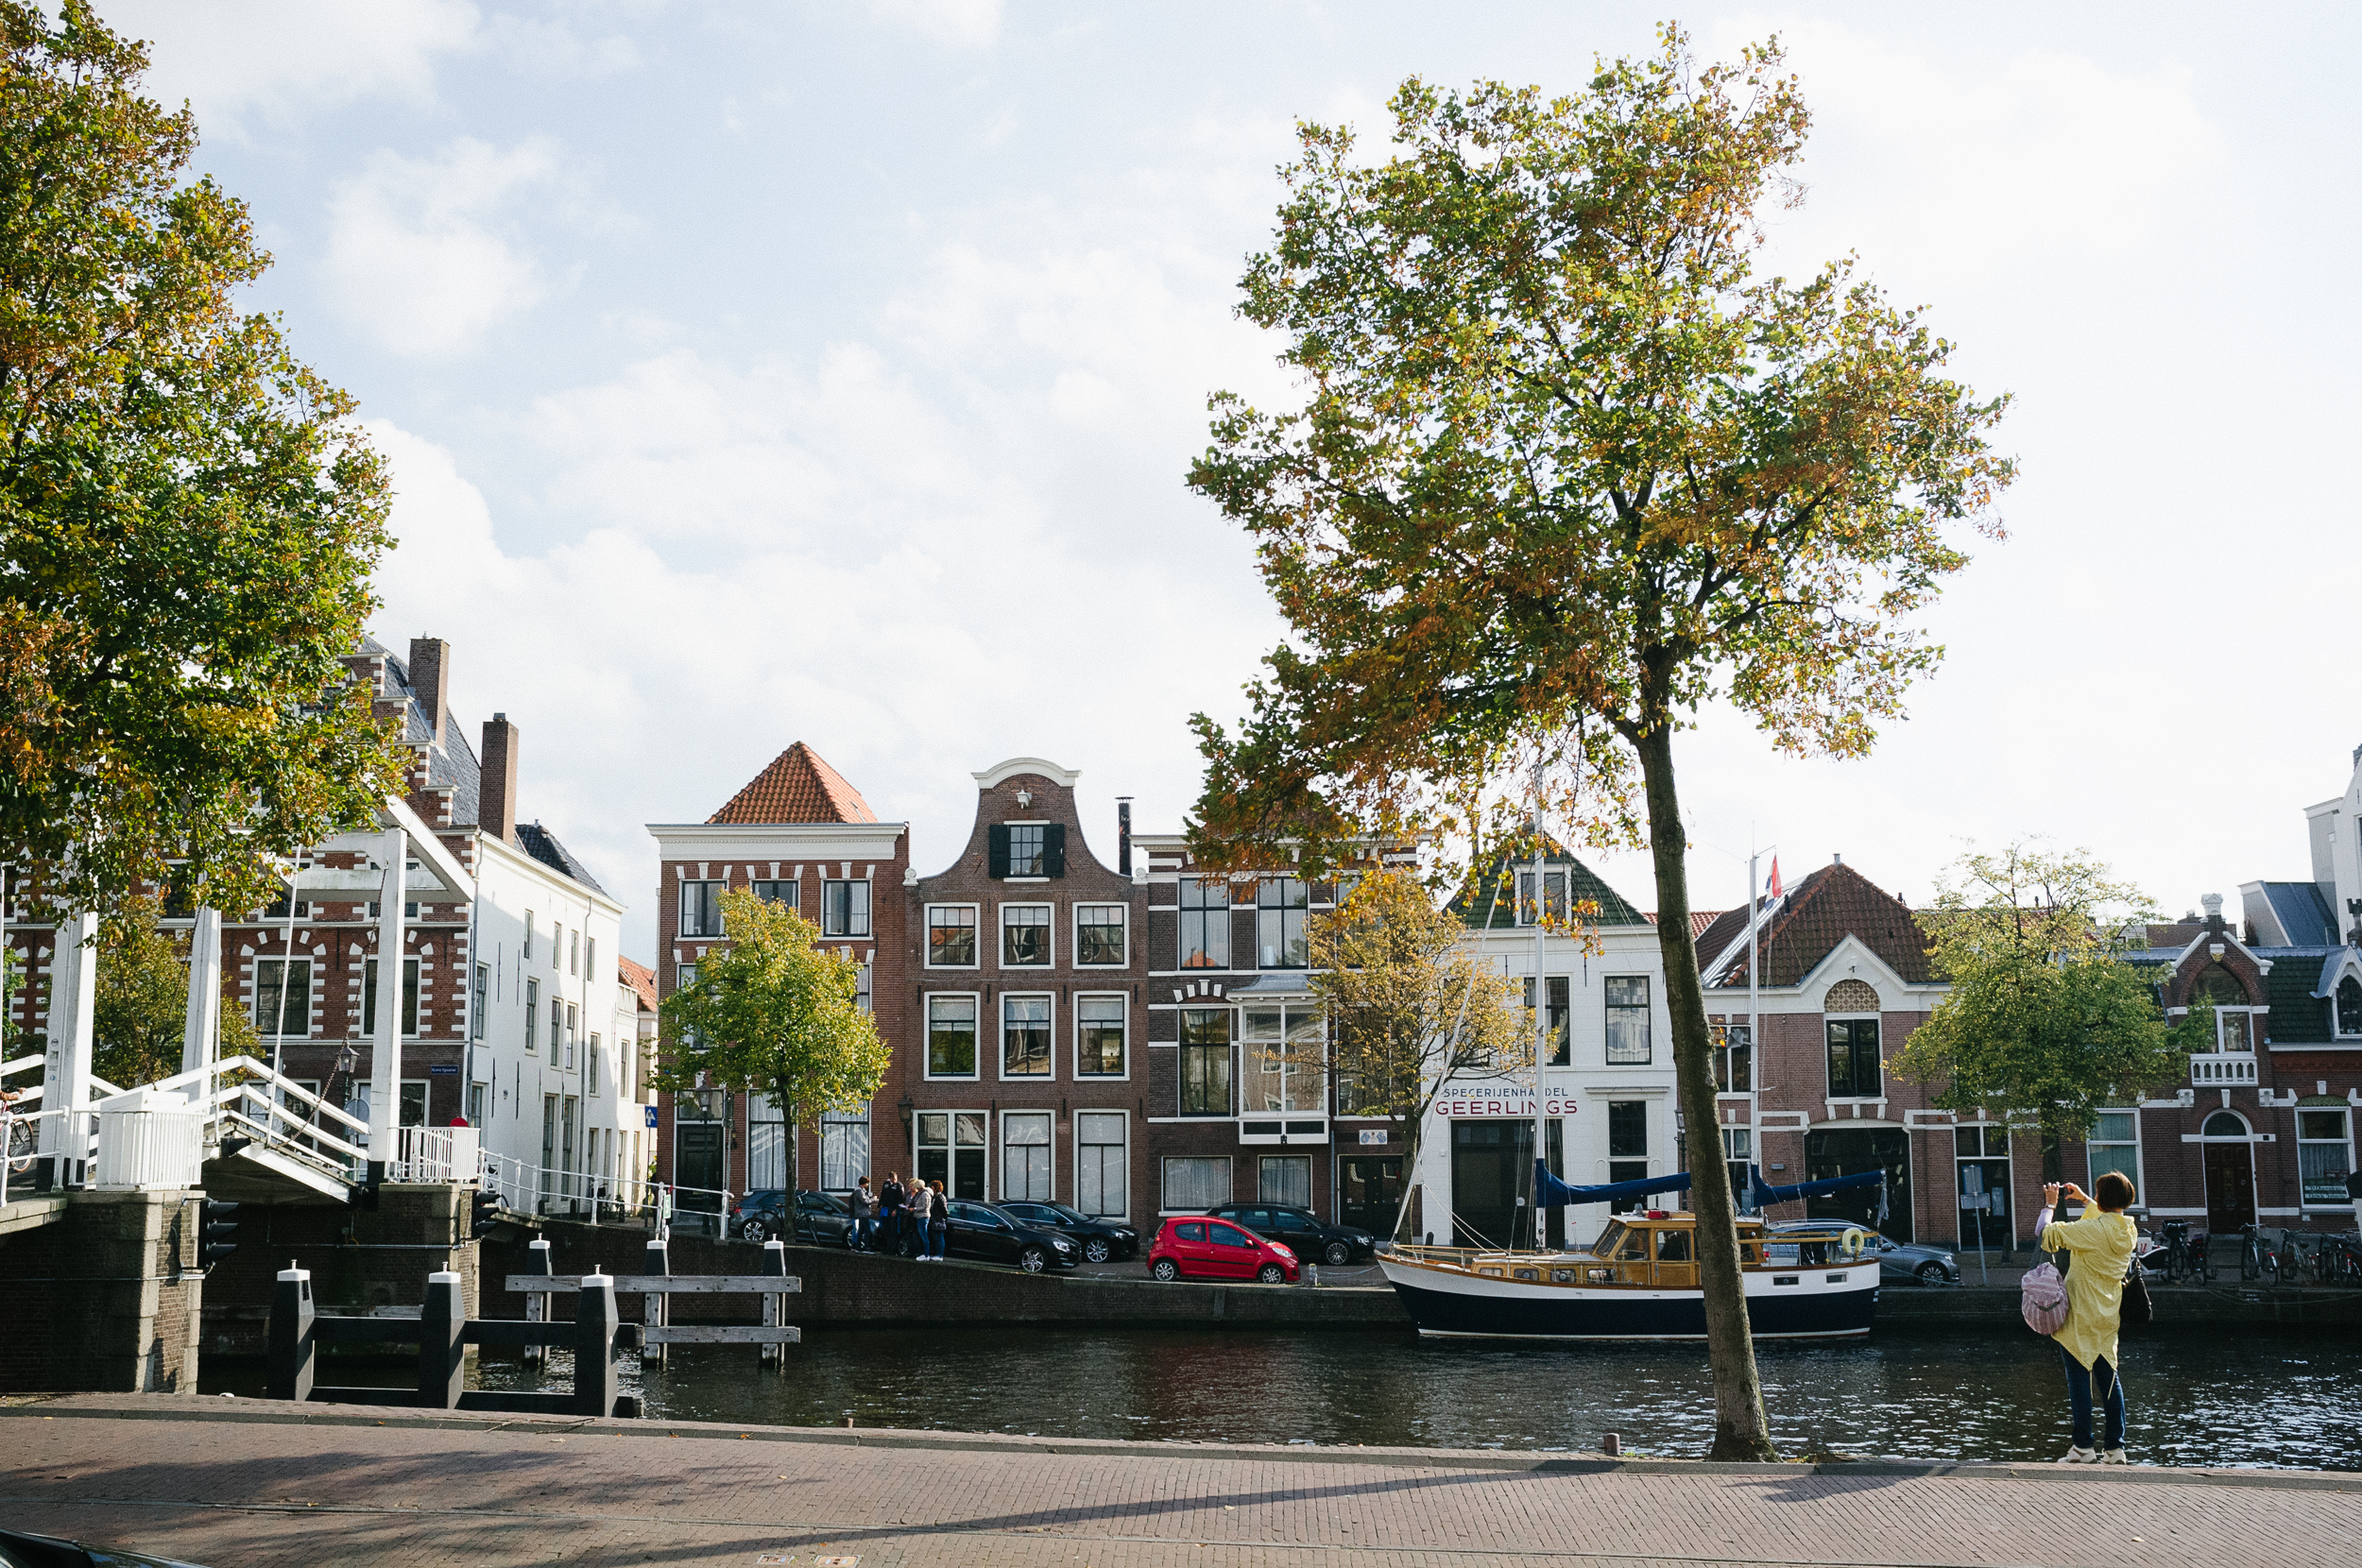 Dutch architecture abounds in Haarlem's streets.Photo taken with Fuji X100S, edited with VSCO.